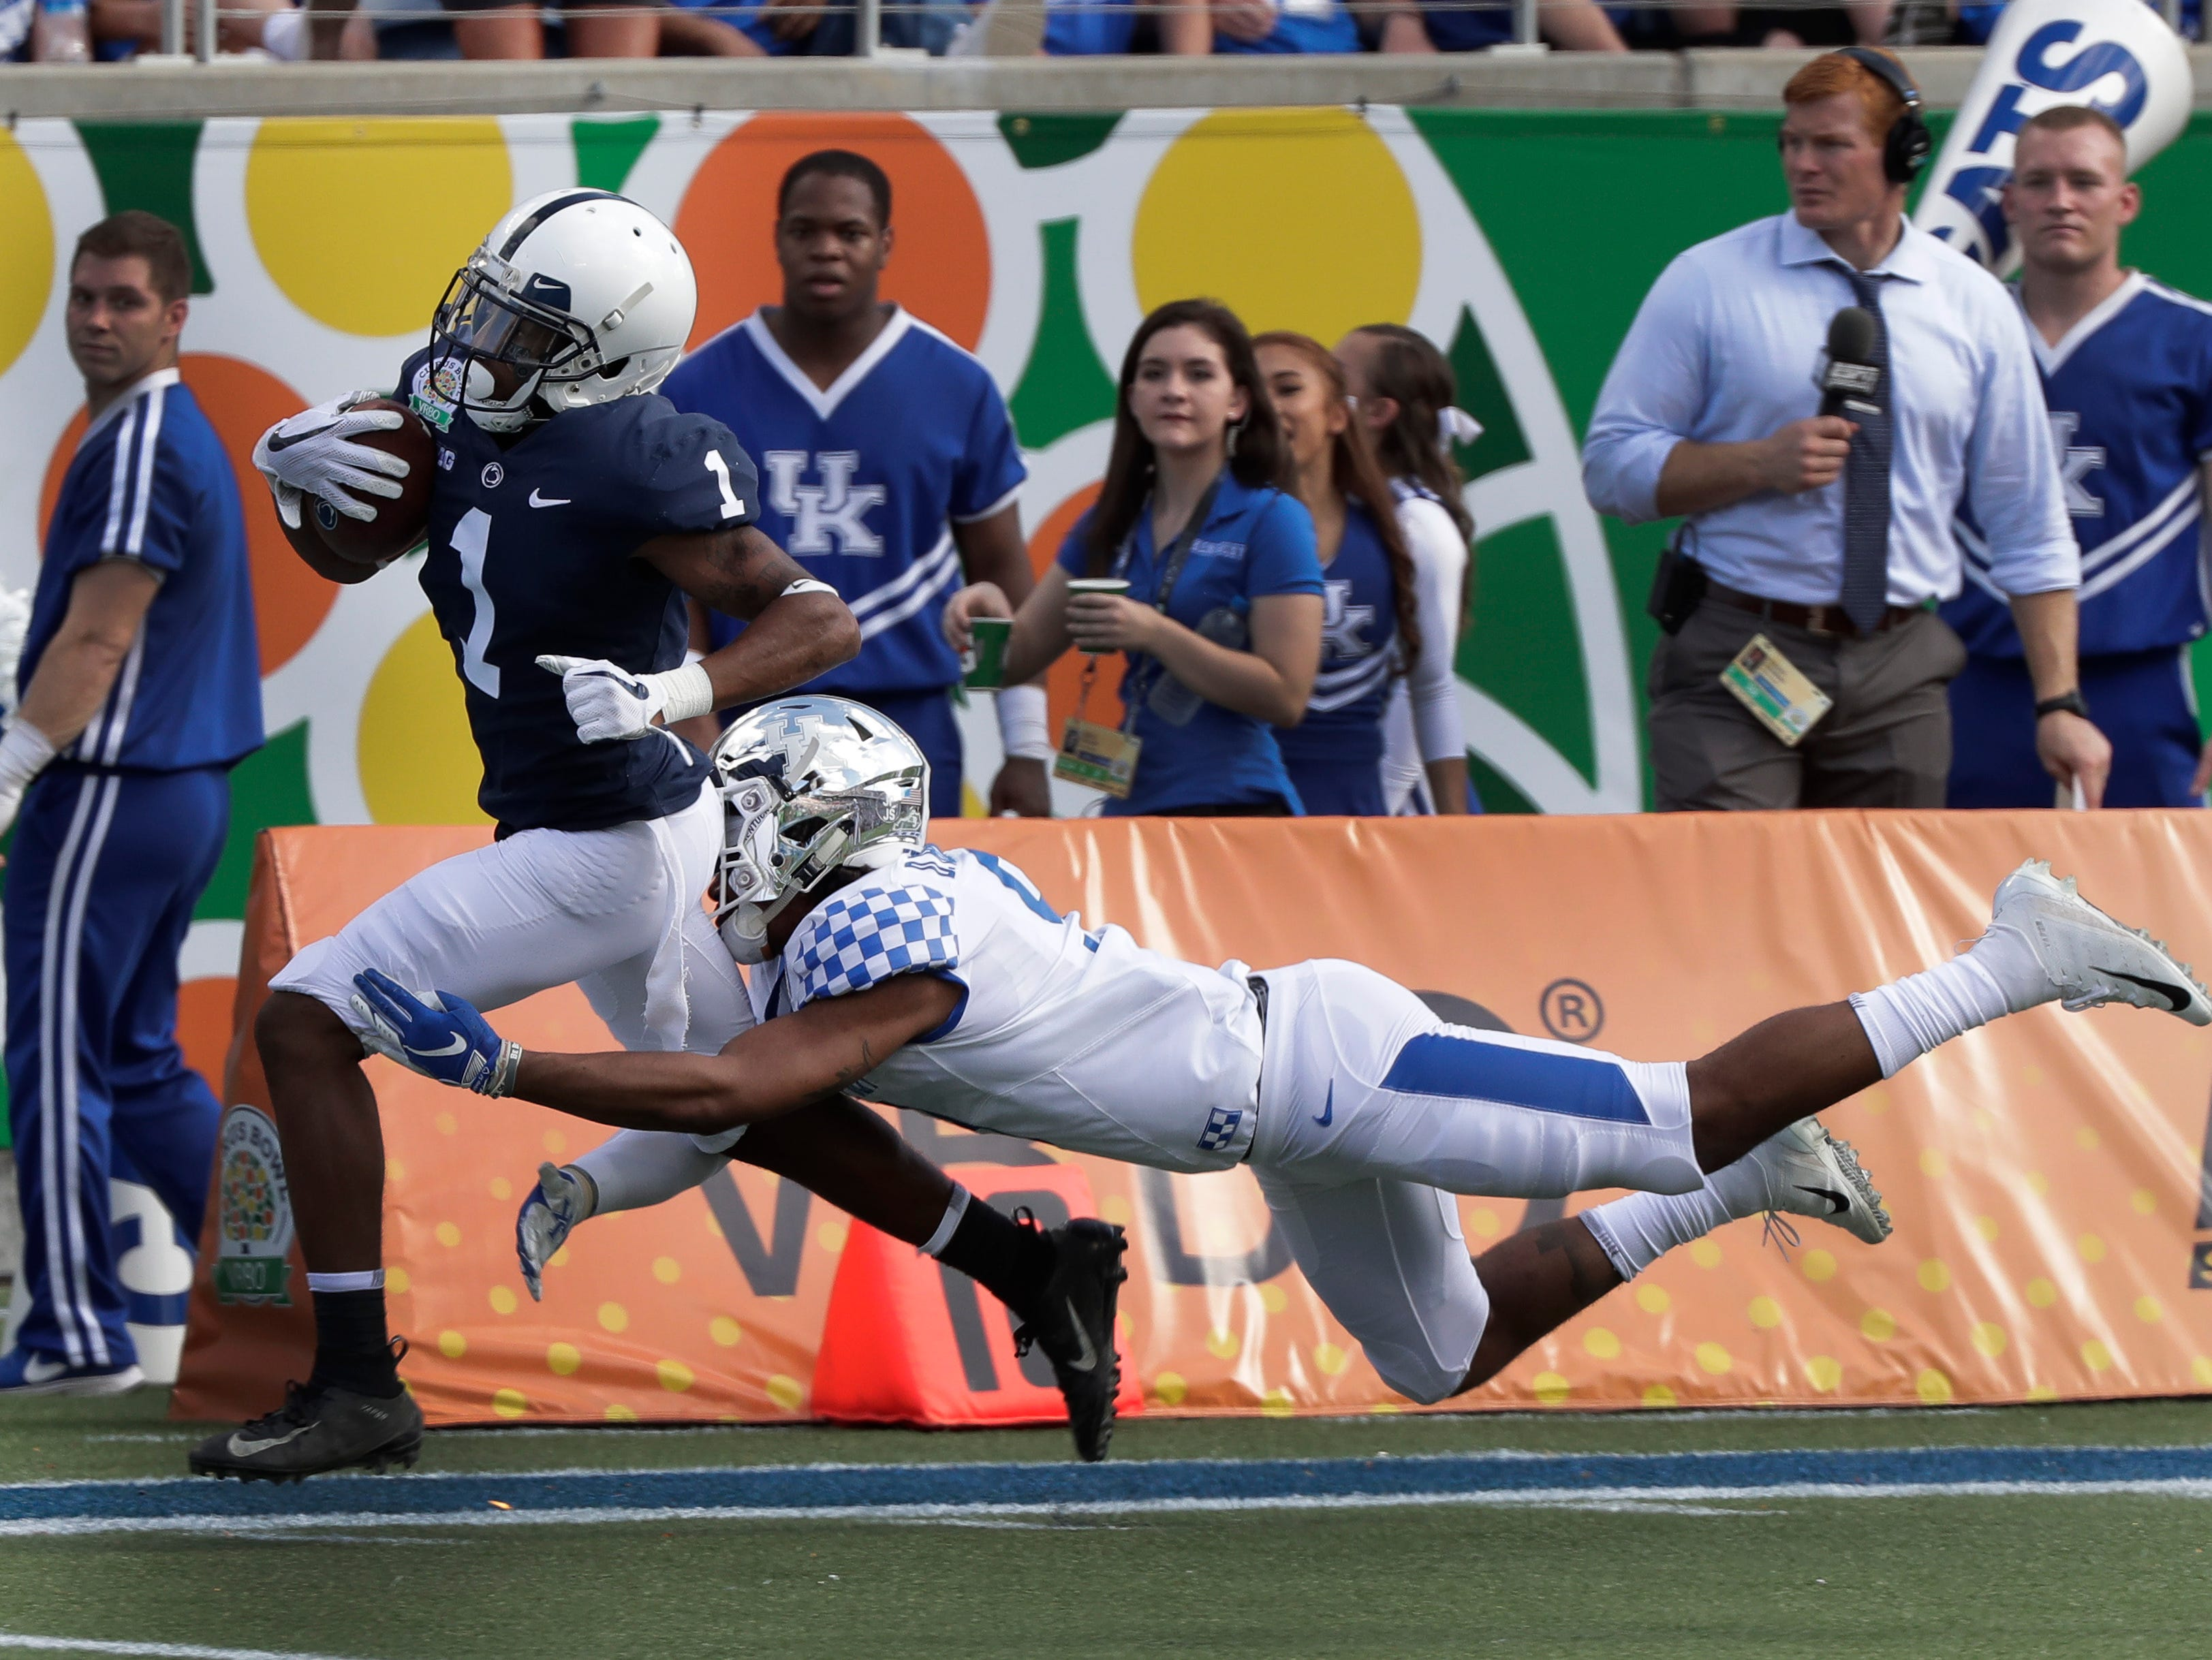 Kentucky safety Davonte Robinson, right, stops Penn State wide receiver KJ Hamler (1) after a 41-yard gain just short of the goal line during the first half of the Citrus Bowl NCAA college football game, Tuesday, Jan. 1, 2019, in Orlando, Fla. (AP Photo/John Raoux)